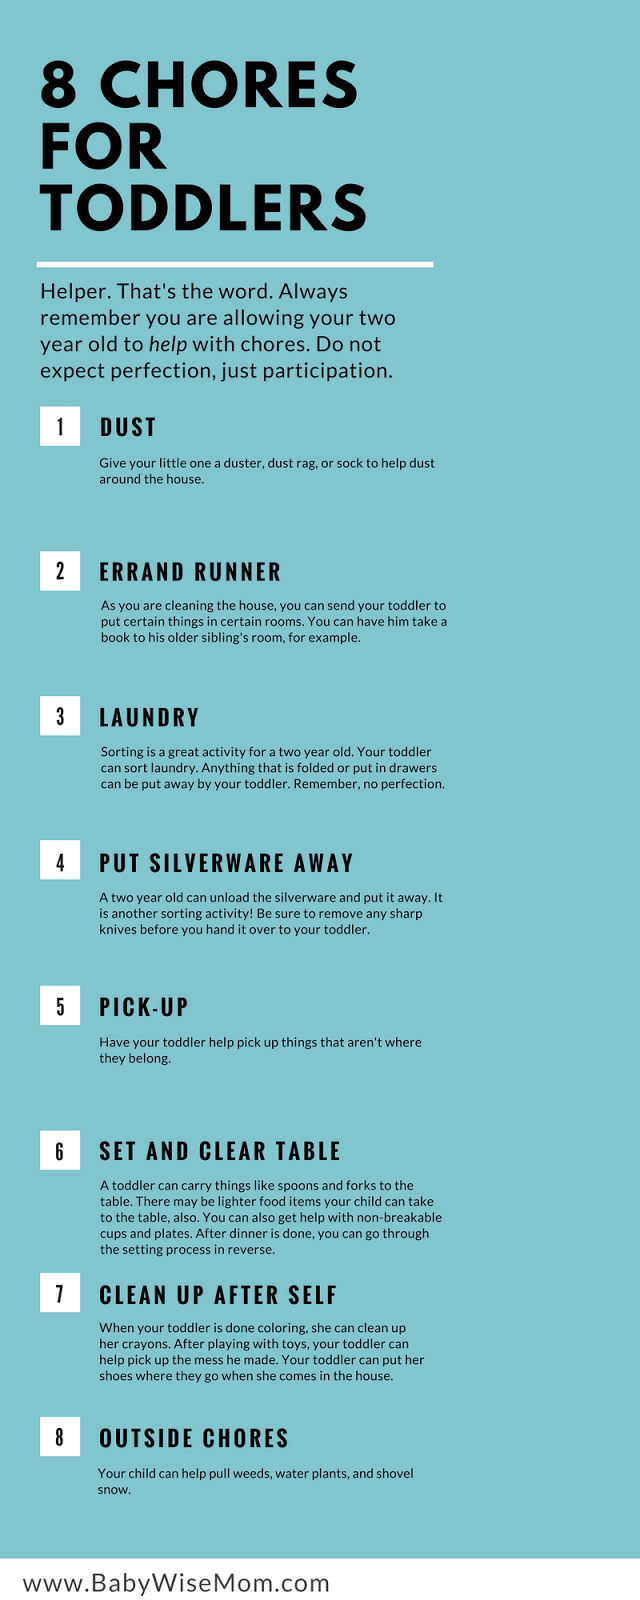 8 Chores for Toddlers Infographic